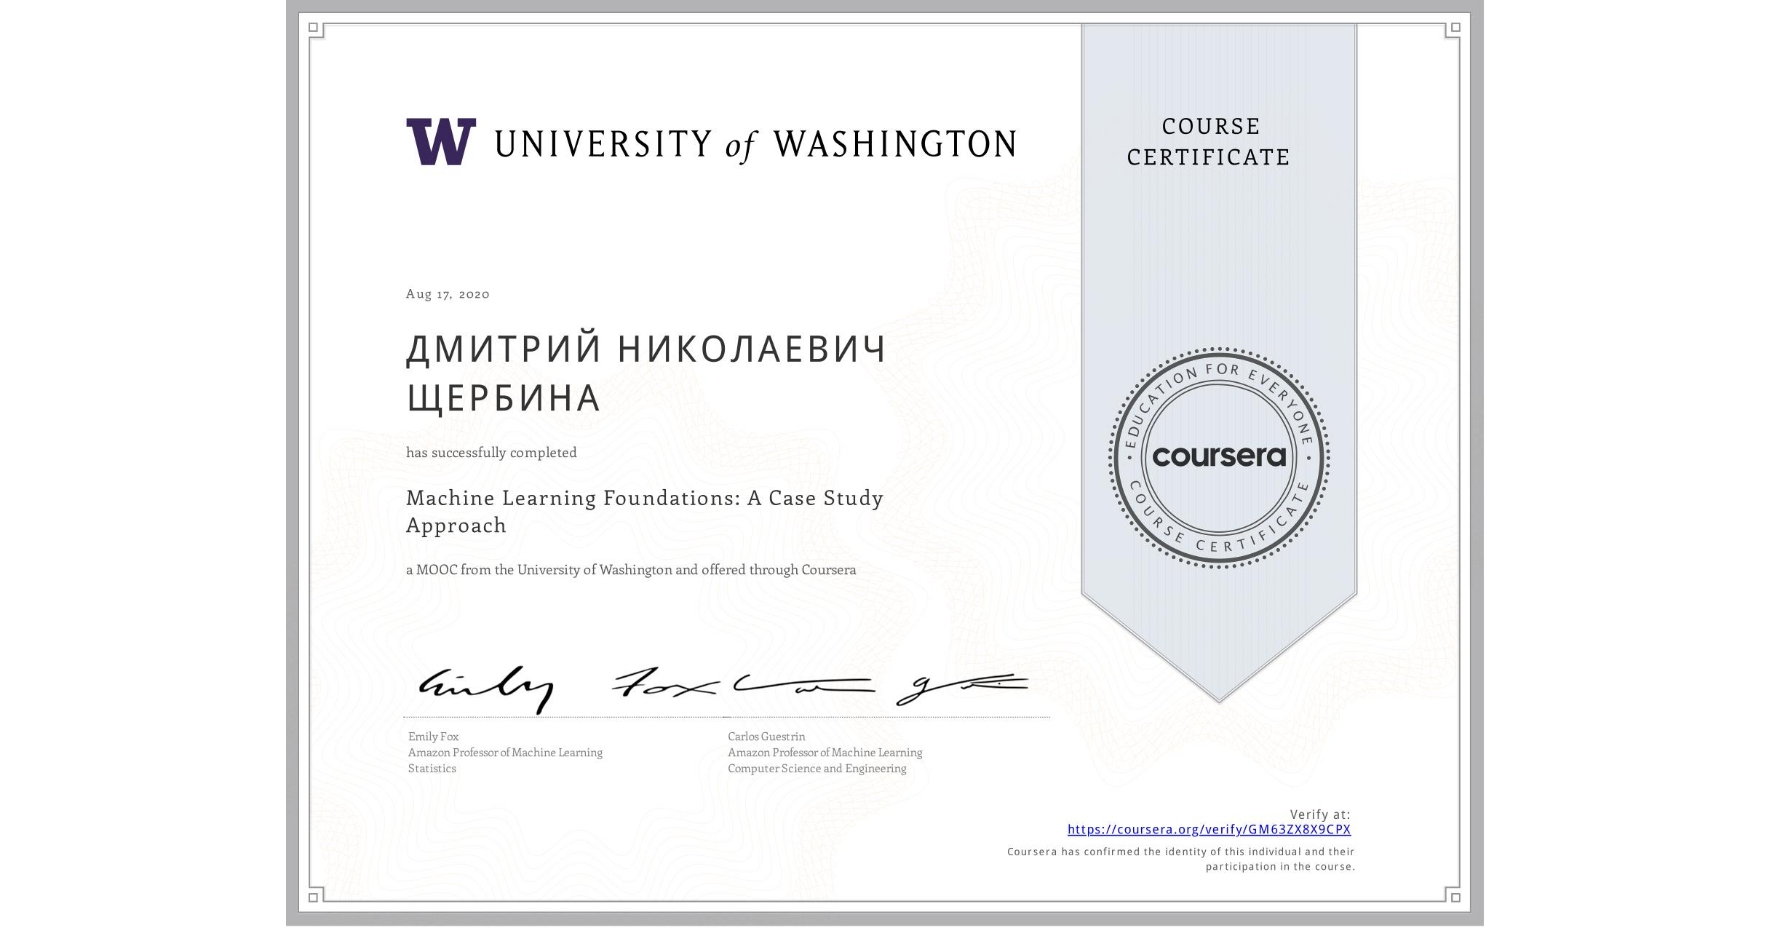 View certificate for ДМИТРИЙ НИКОЛАЕВИЧ ЩЕРБИНА, Machine Learning Foundations: A Case Study Approach, an online non-credit course authorized by University of Washington and offered through Coursera